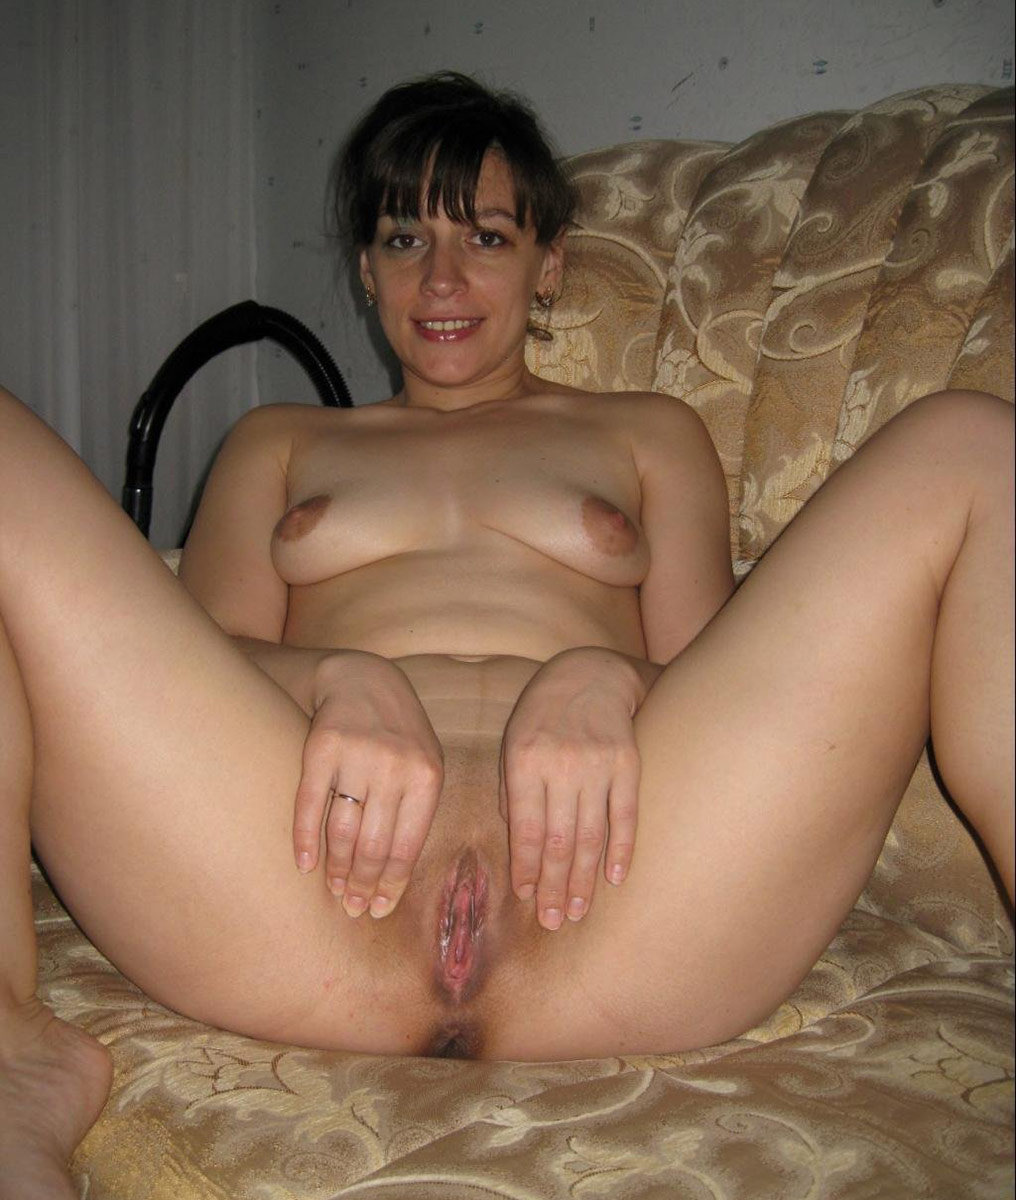 Amature mature pussy pics with you